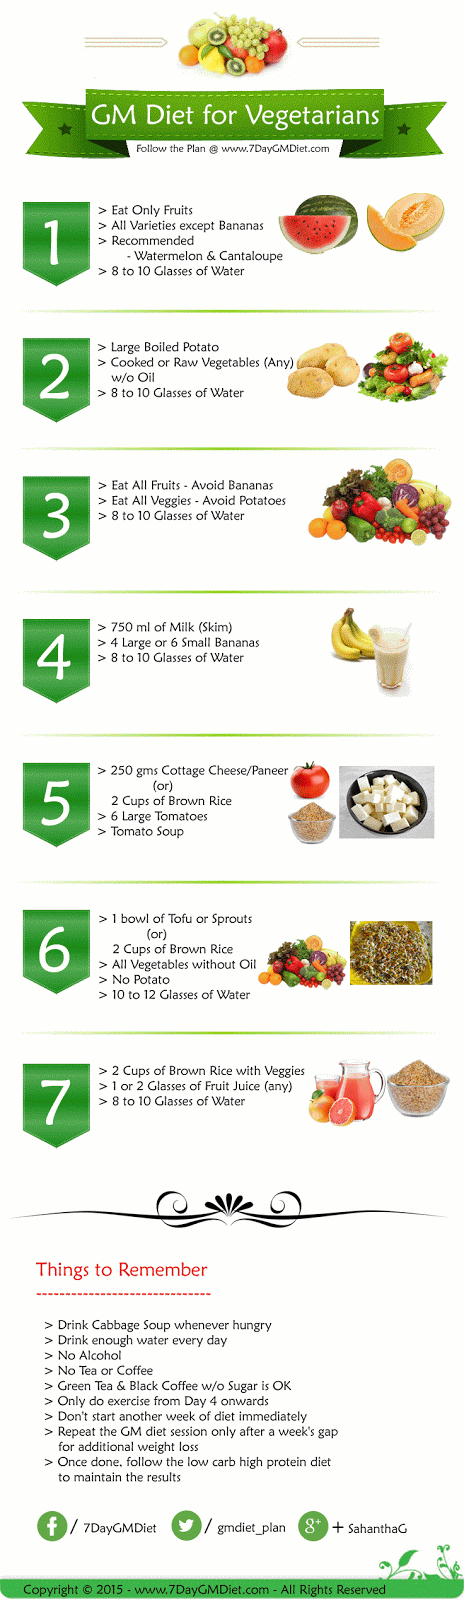 Vegetarian Gm Diet Plan Follow The Gm Diet For Vegetarians And Lose Up To 15 Diet Exerciseforweig General Motors Diet General Motors Diet Plan Gm Diet Plans